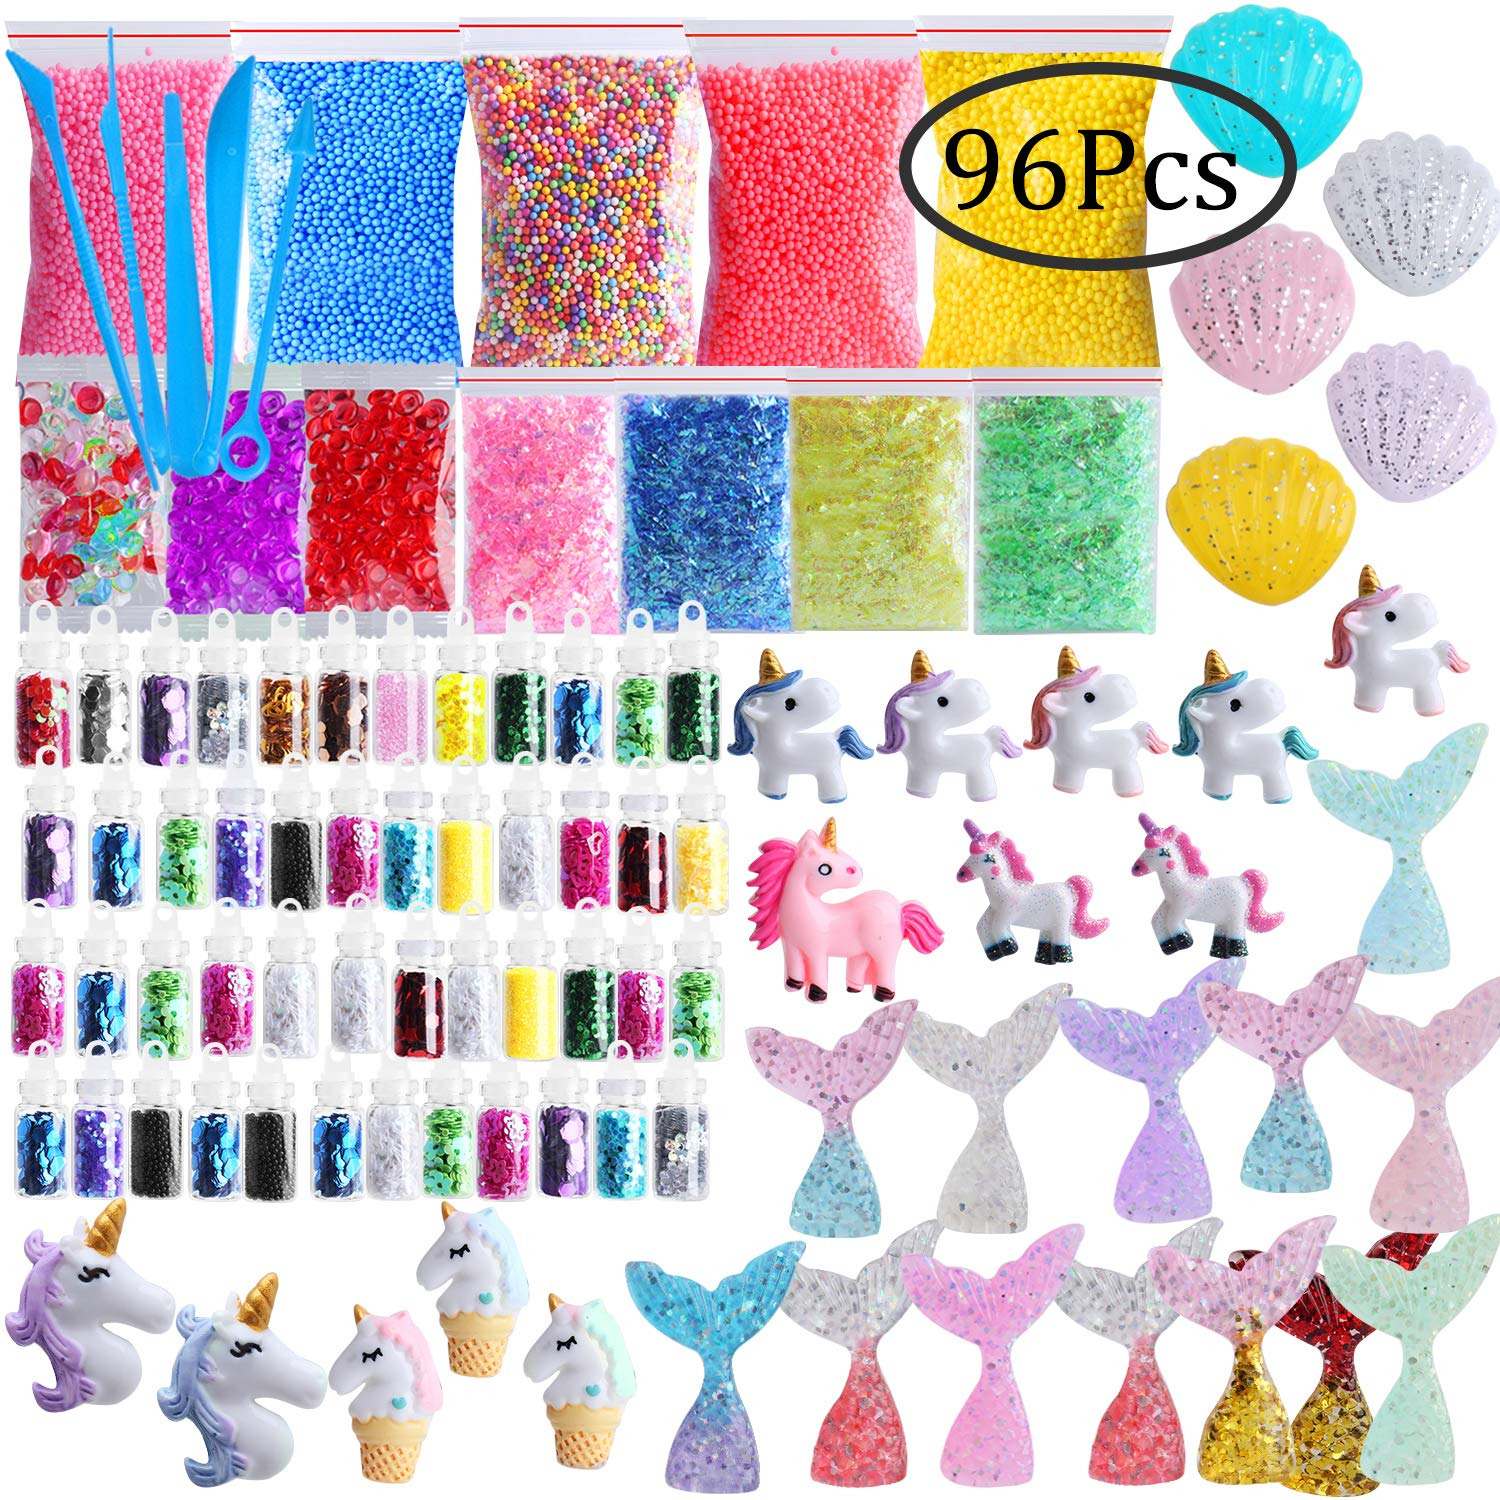 Slime Supplies Kit, Outee 96 Pack Glitter Slime Fish Bowl Beads Add Ins  Floam Ingredients Mermaid Unicorn Glitter Jar Tools Glitter Slime Charms  Kit